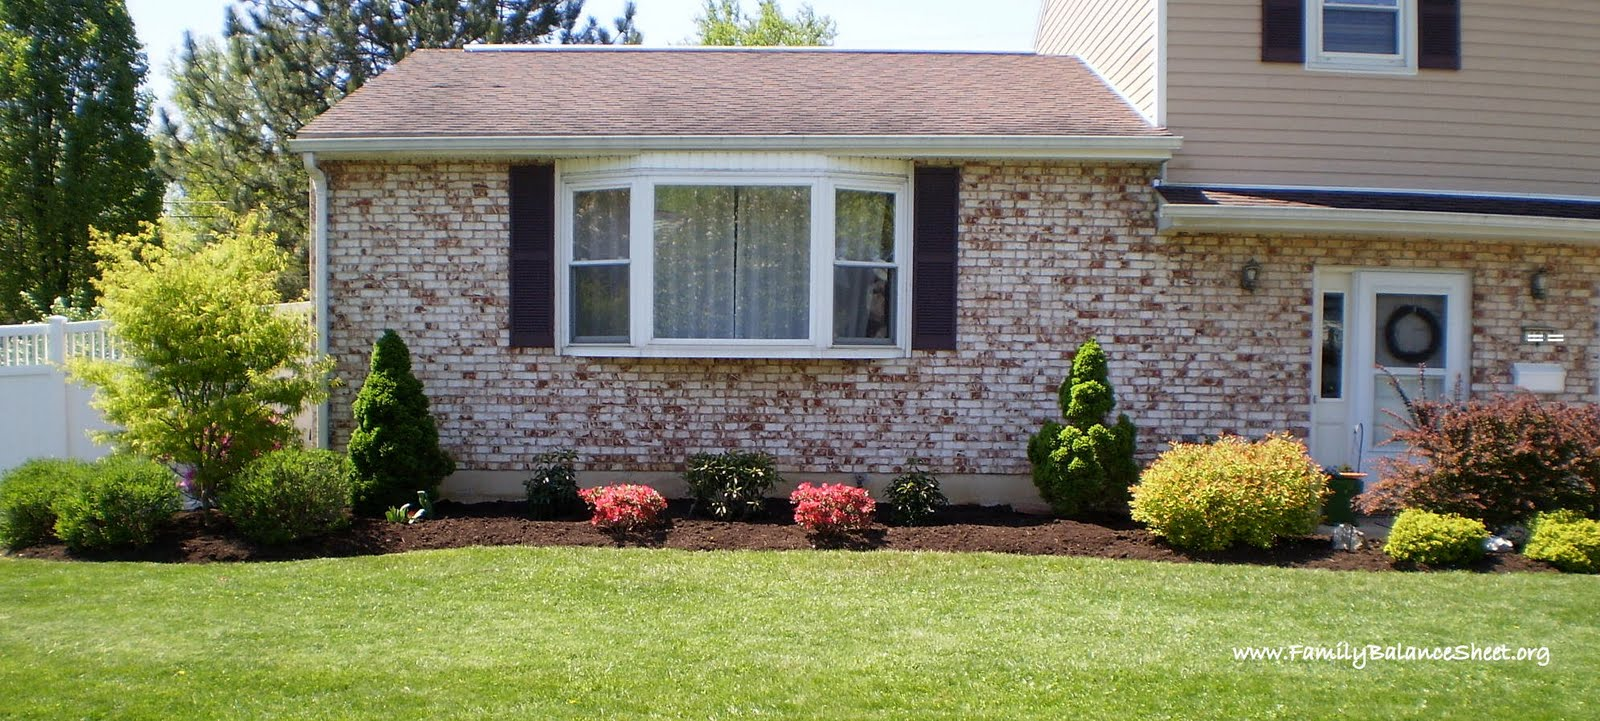 15 tips to help you design your front yard save money too for Front landscaping plans